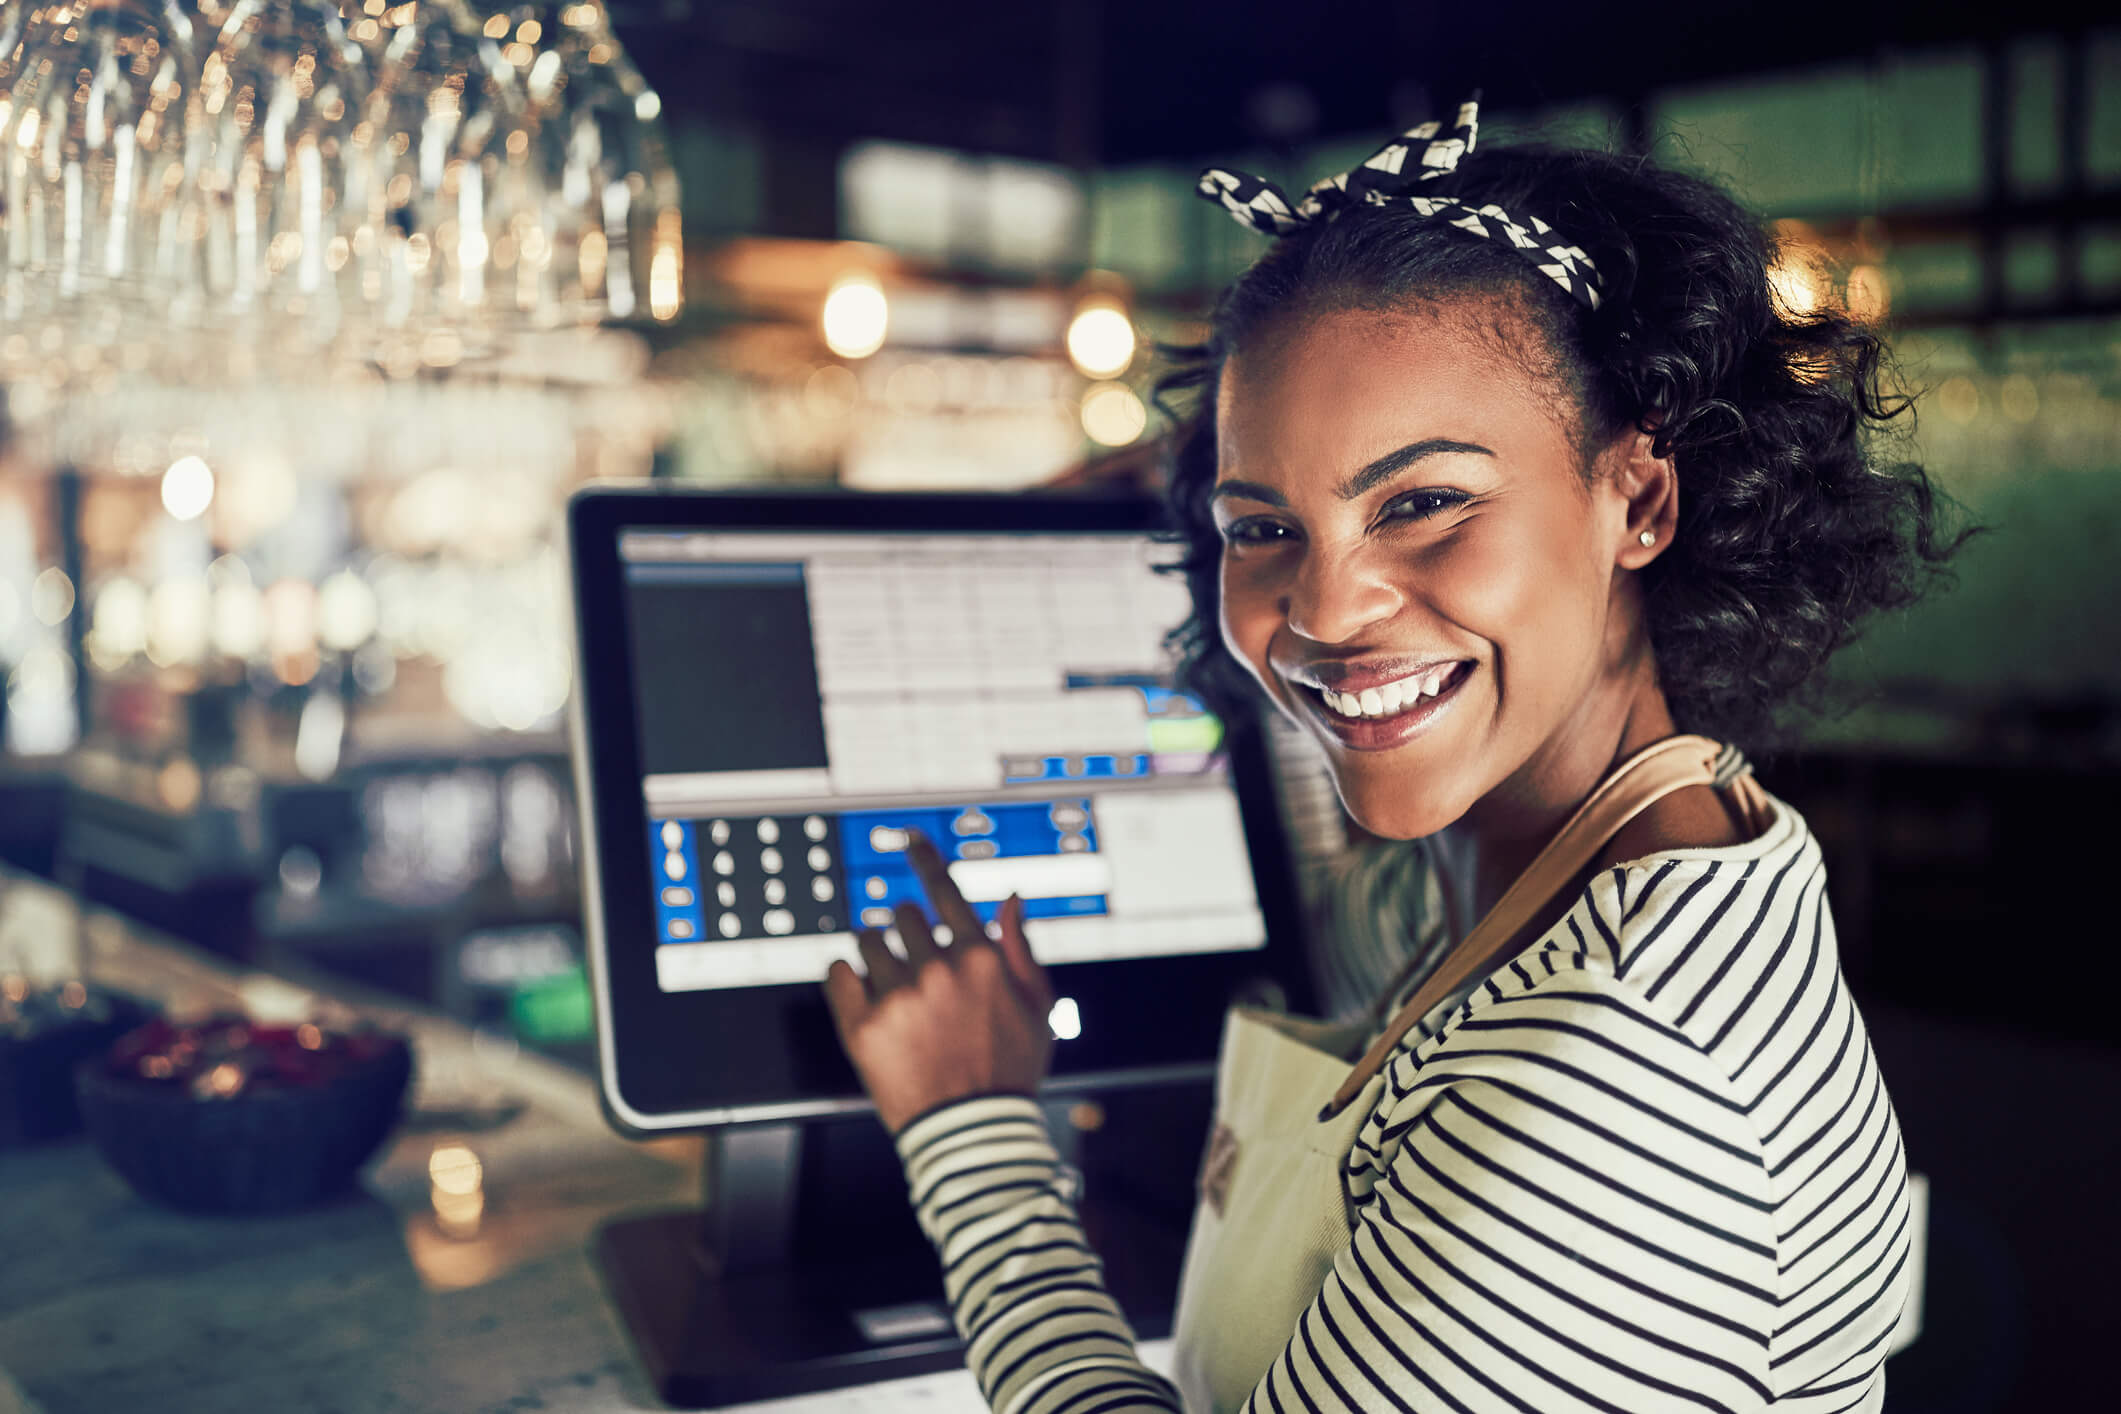 POS Systems in Retail - Complete Controller